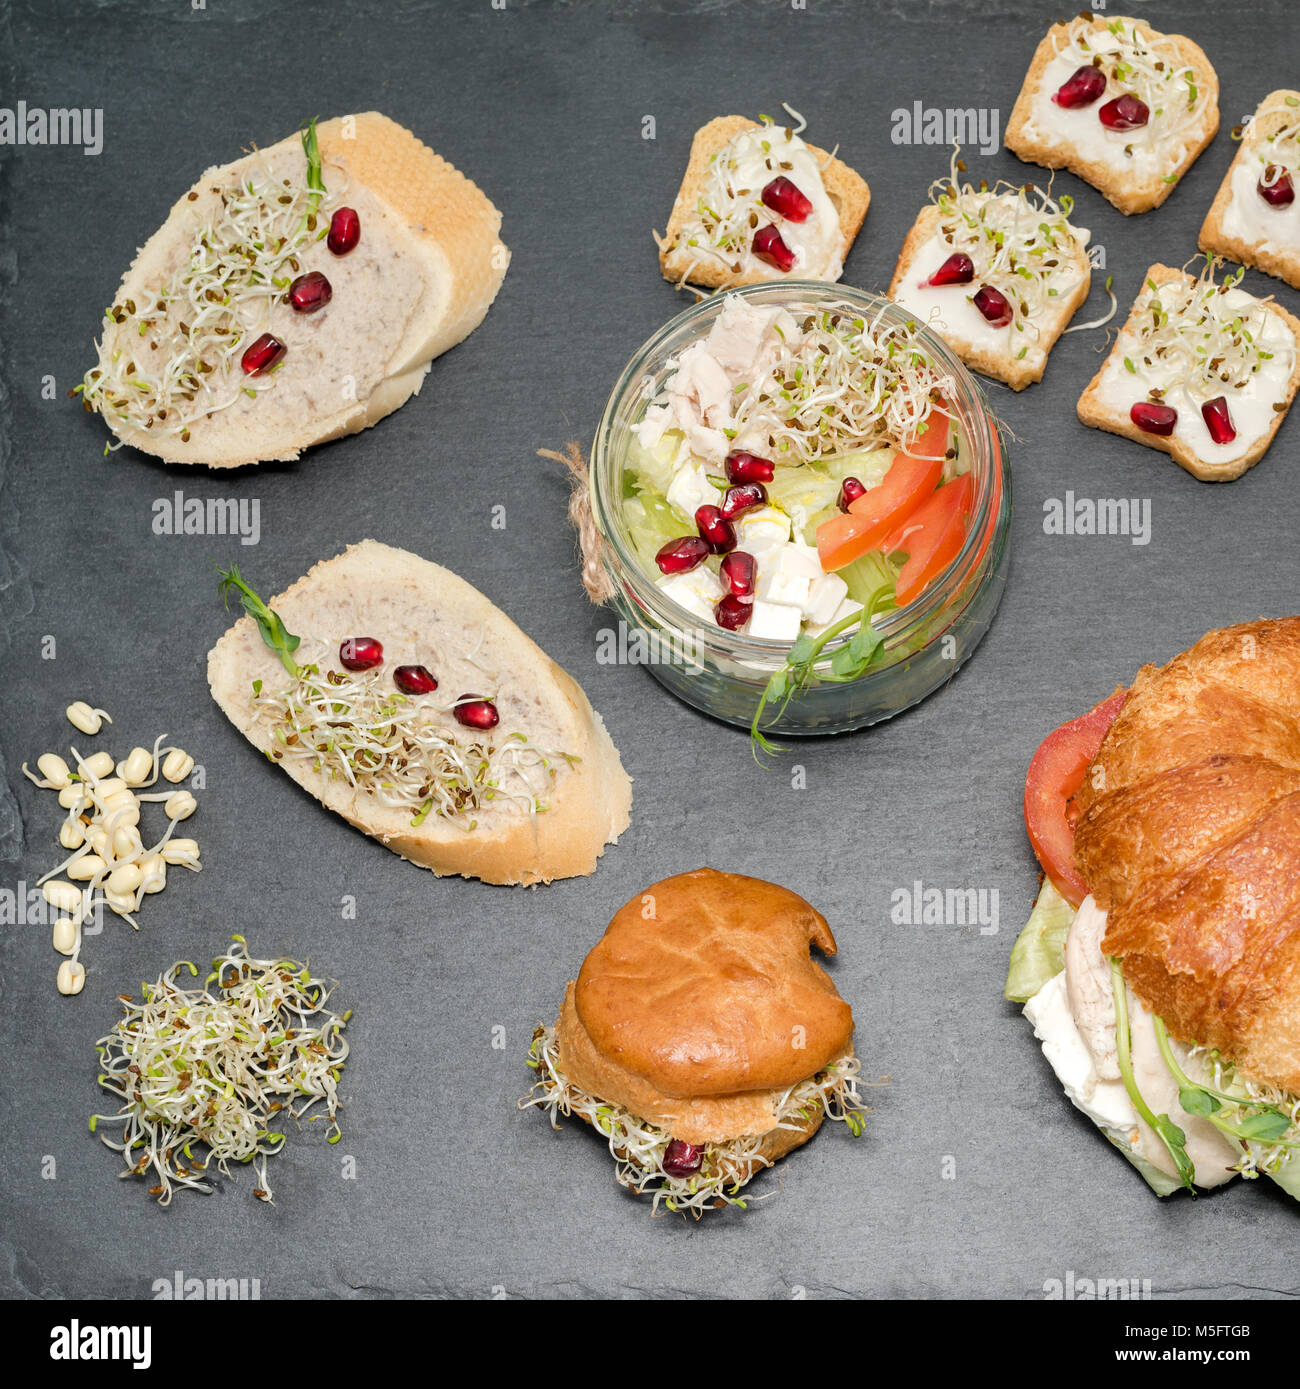 healthy food, menu with microgreens. Vegetarian sandwiches with micro greens assortment. Vegan party food table - Stock Image